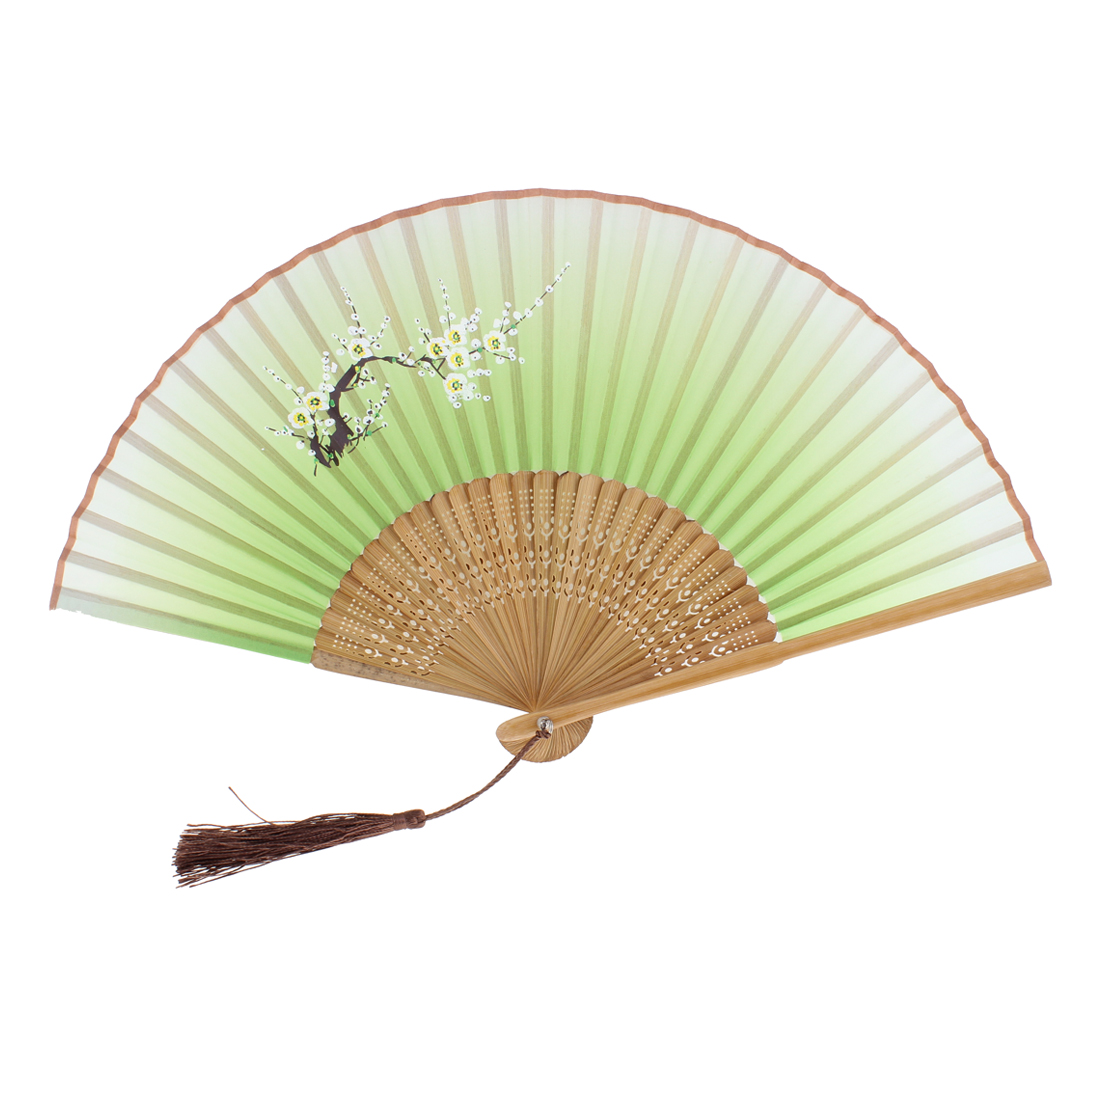 Lady Plum Blossom Pattern Dance Wedding Party Folding Hand Fan Green